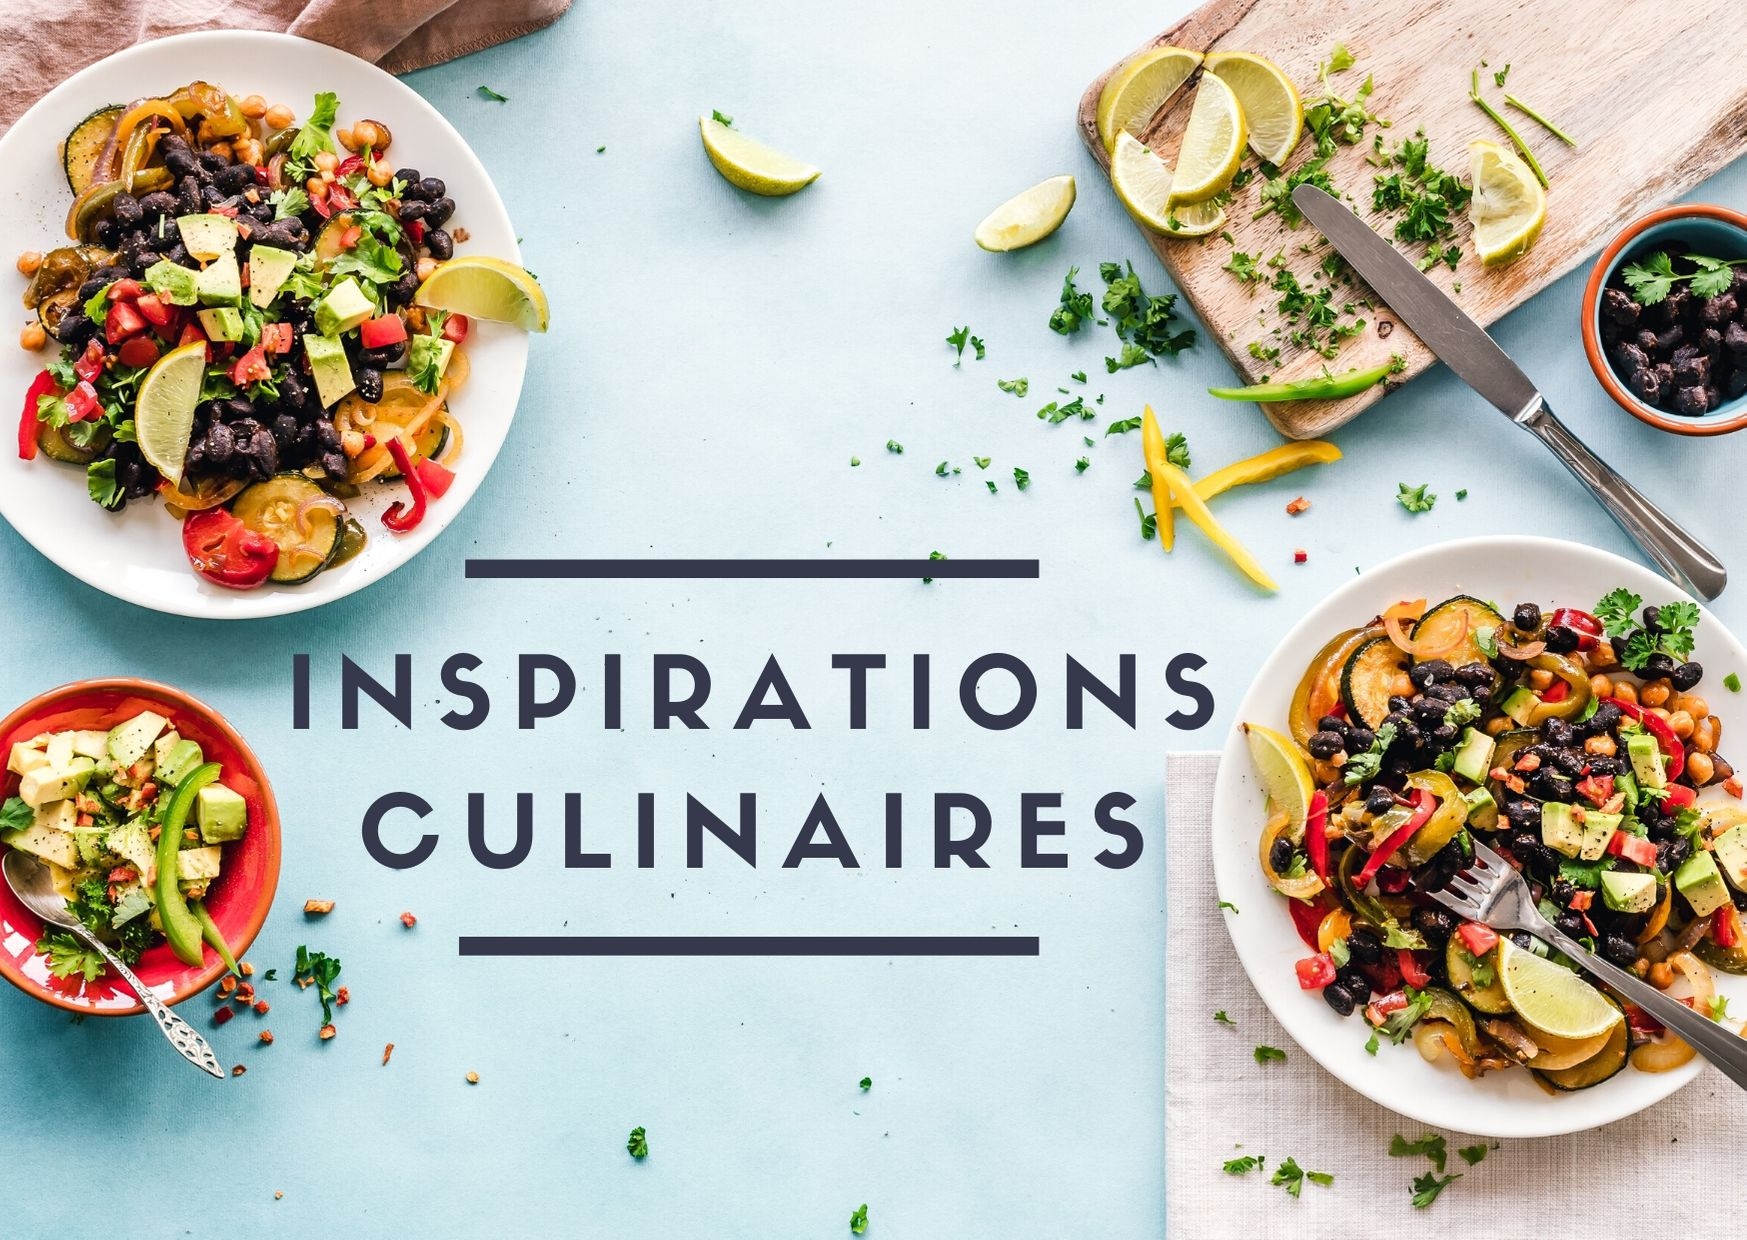 INSPIRATIONS CULINAIRES